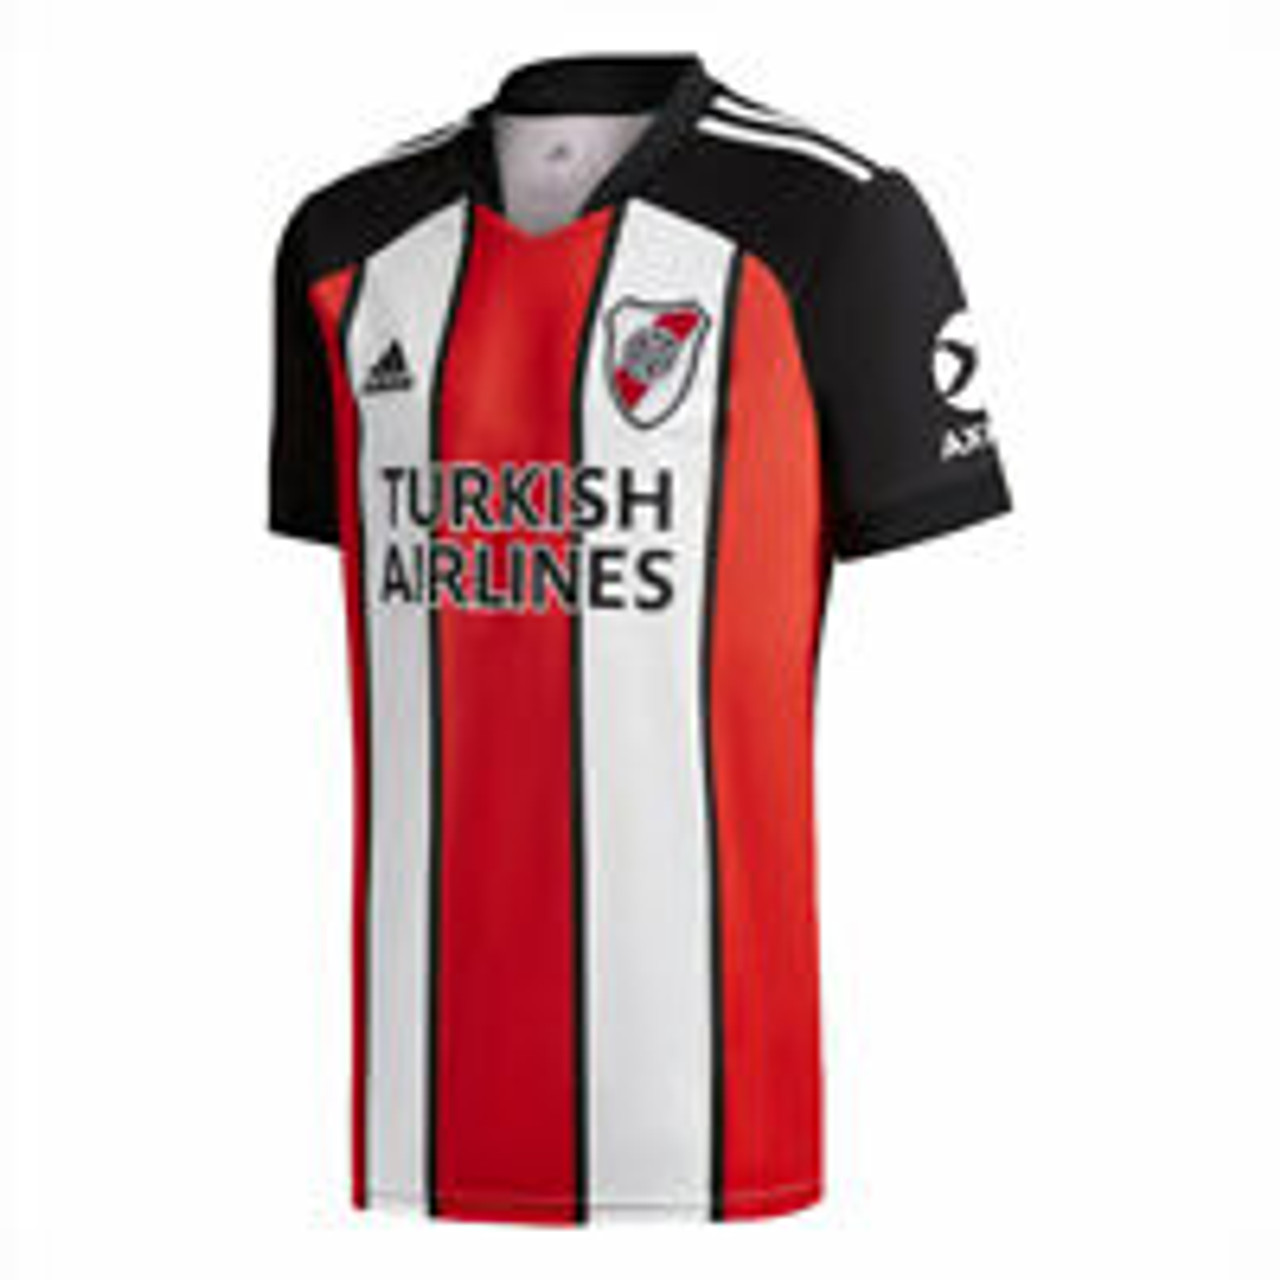 ADIDAS RIVER PLATE 2020 3RD JERSEY